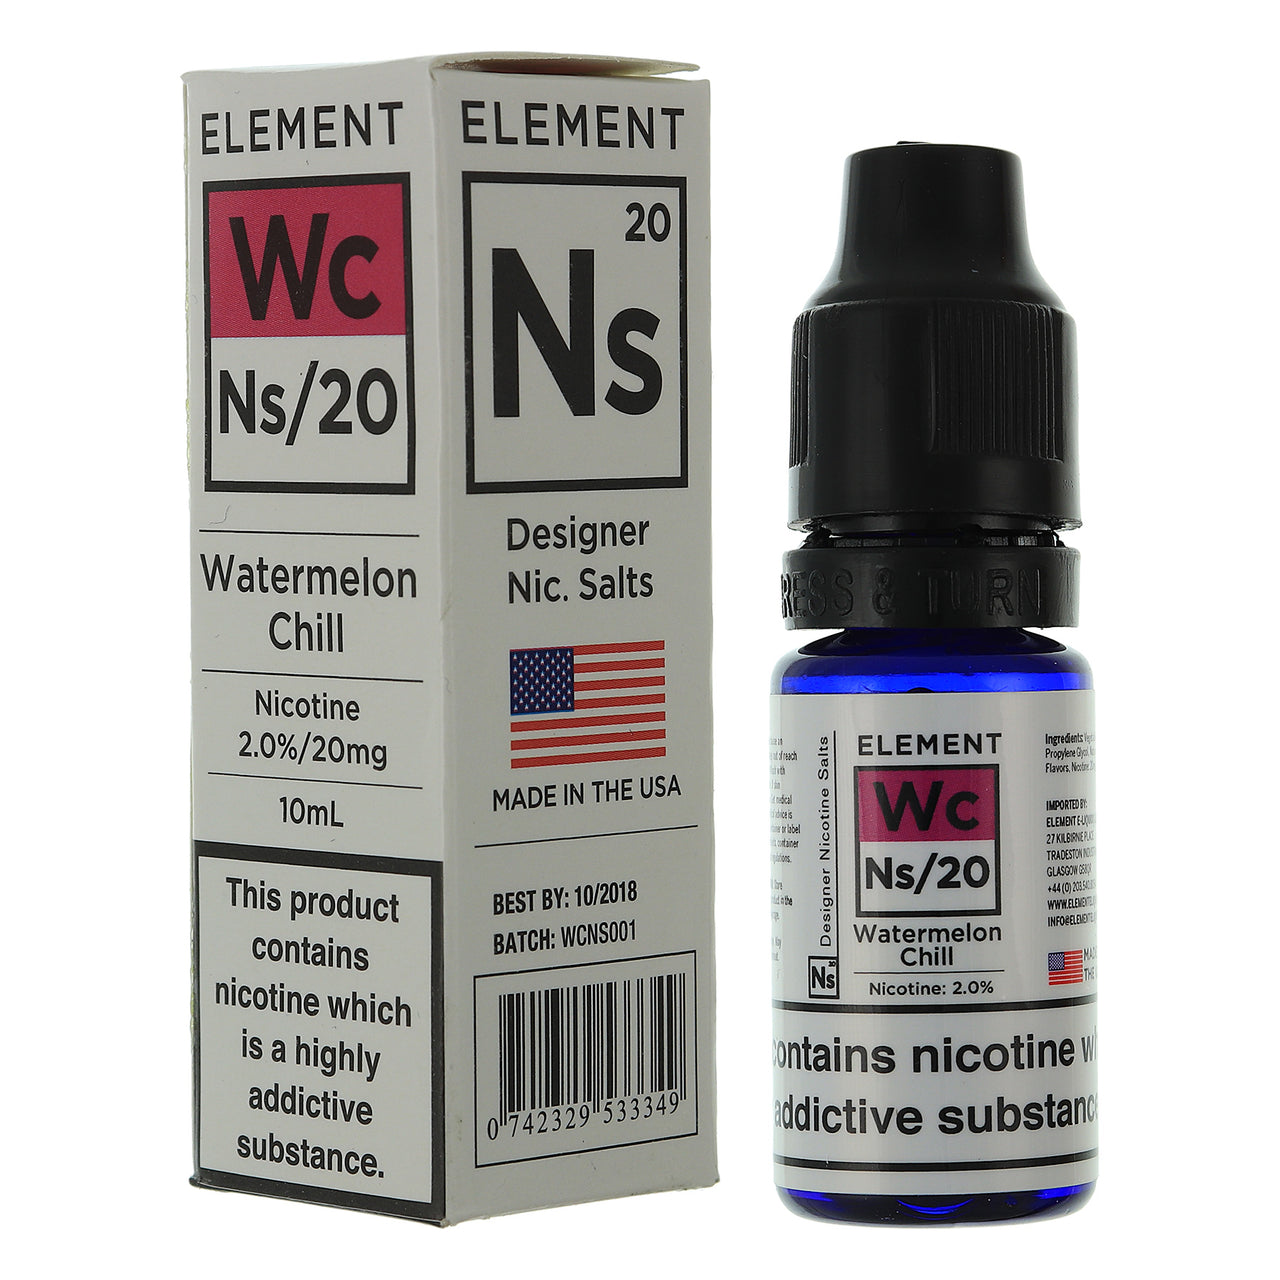 NS20 Watermelon Chill Designer Nic Salts By Element